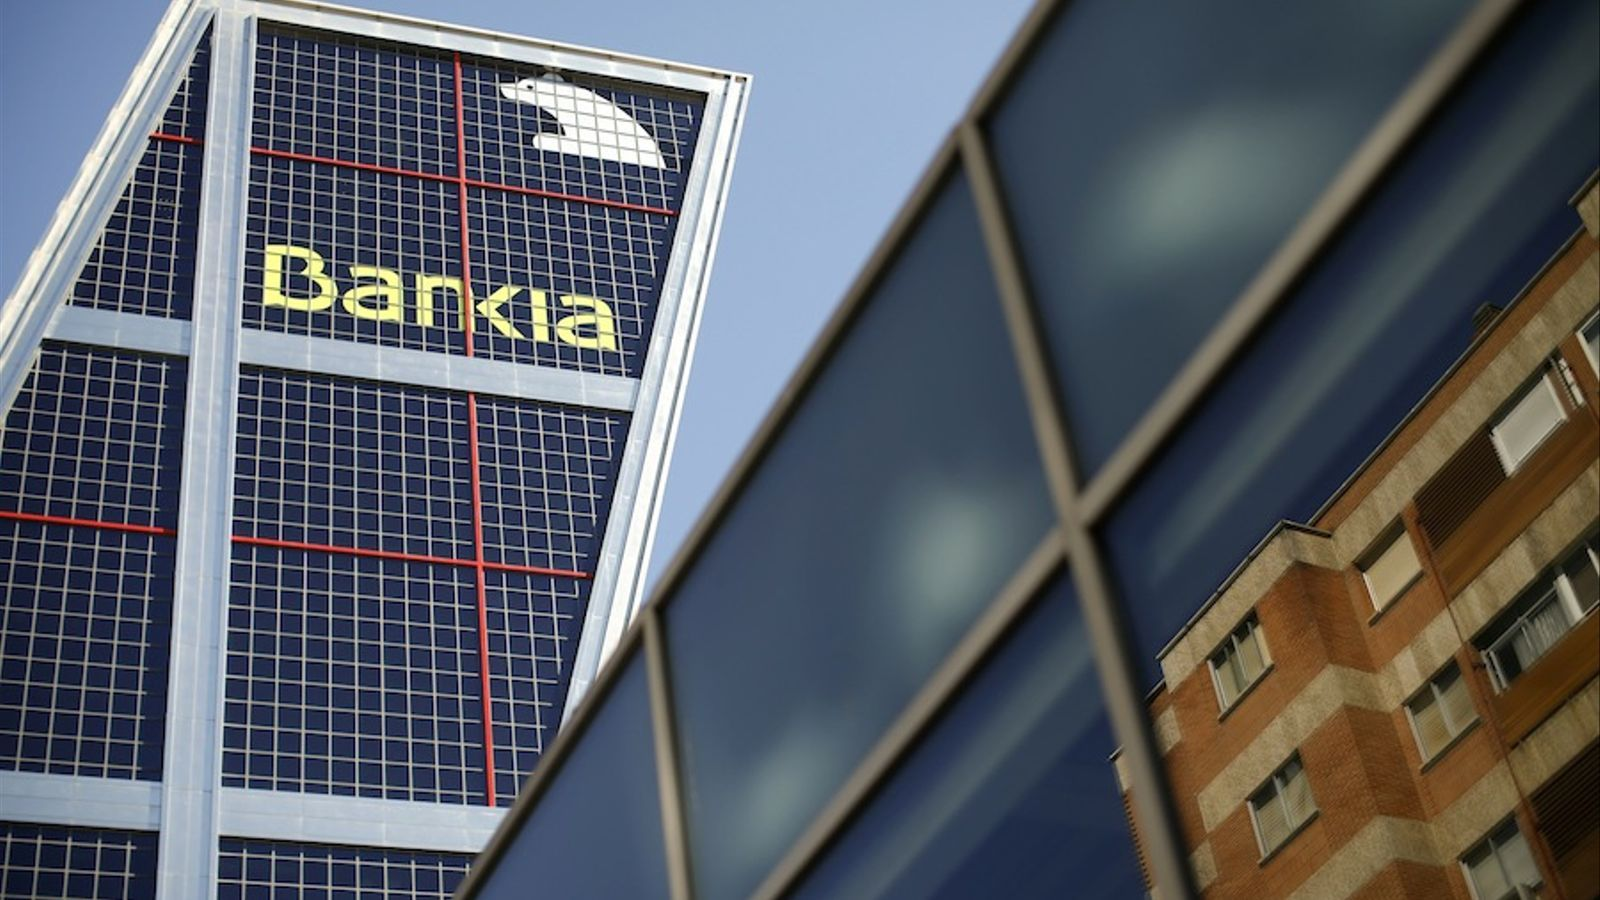 La seu central de Bankia, a Madrid, aquest divendres. / PAUL HANNA / REUTERS